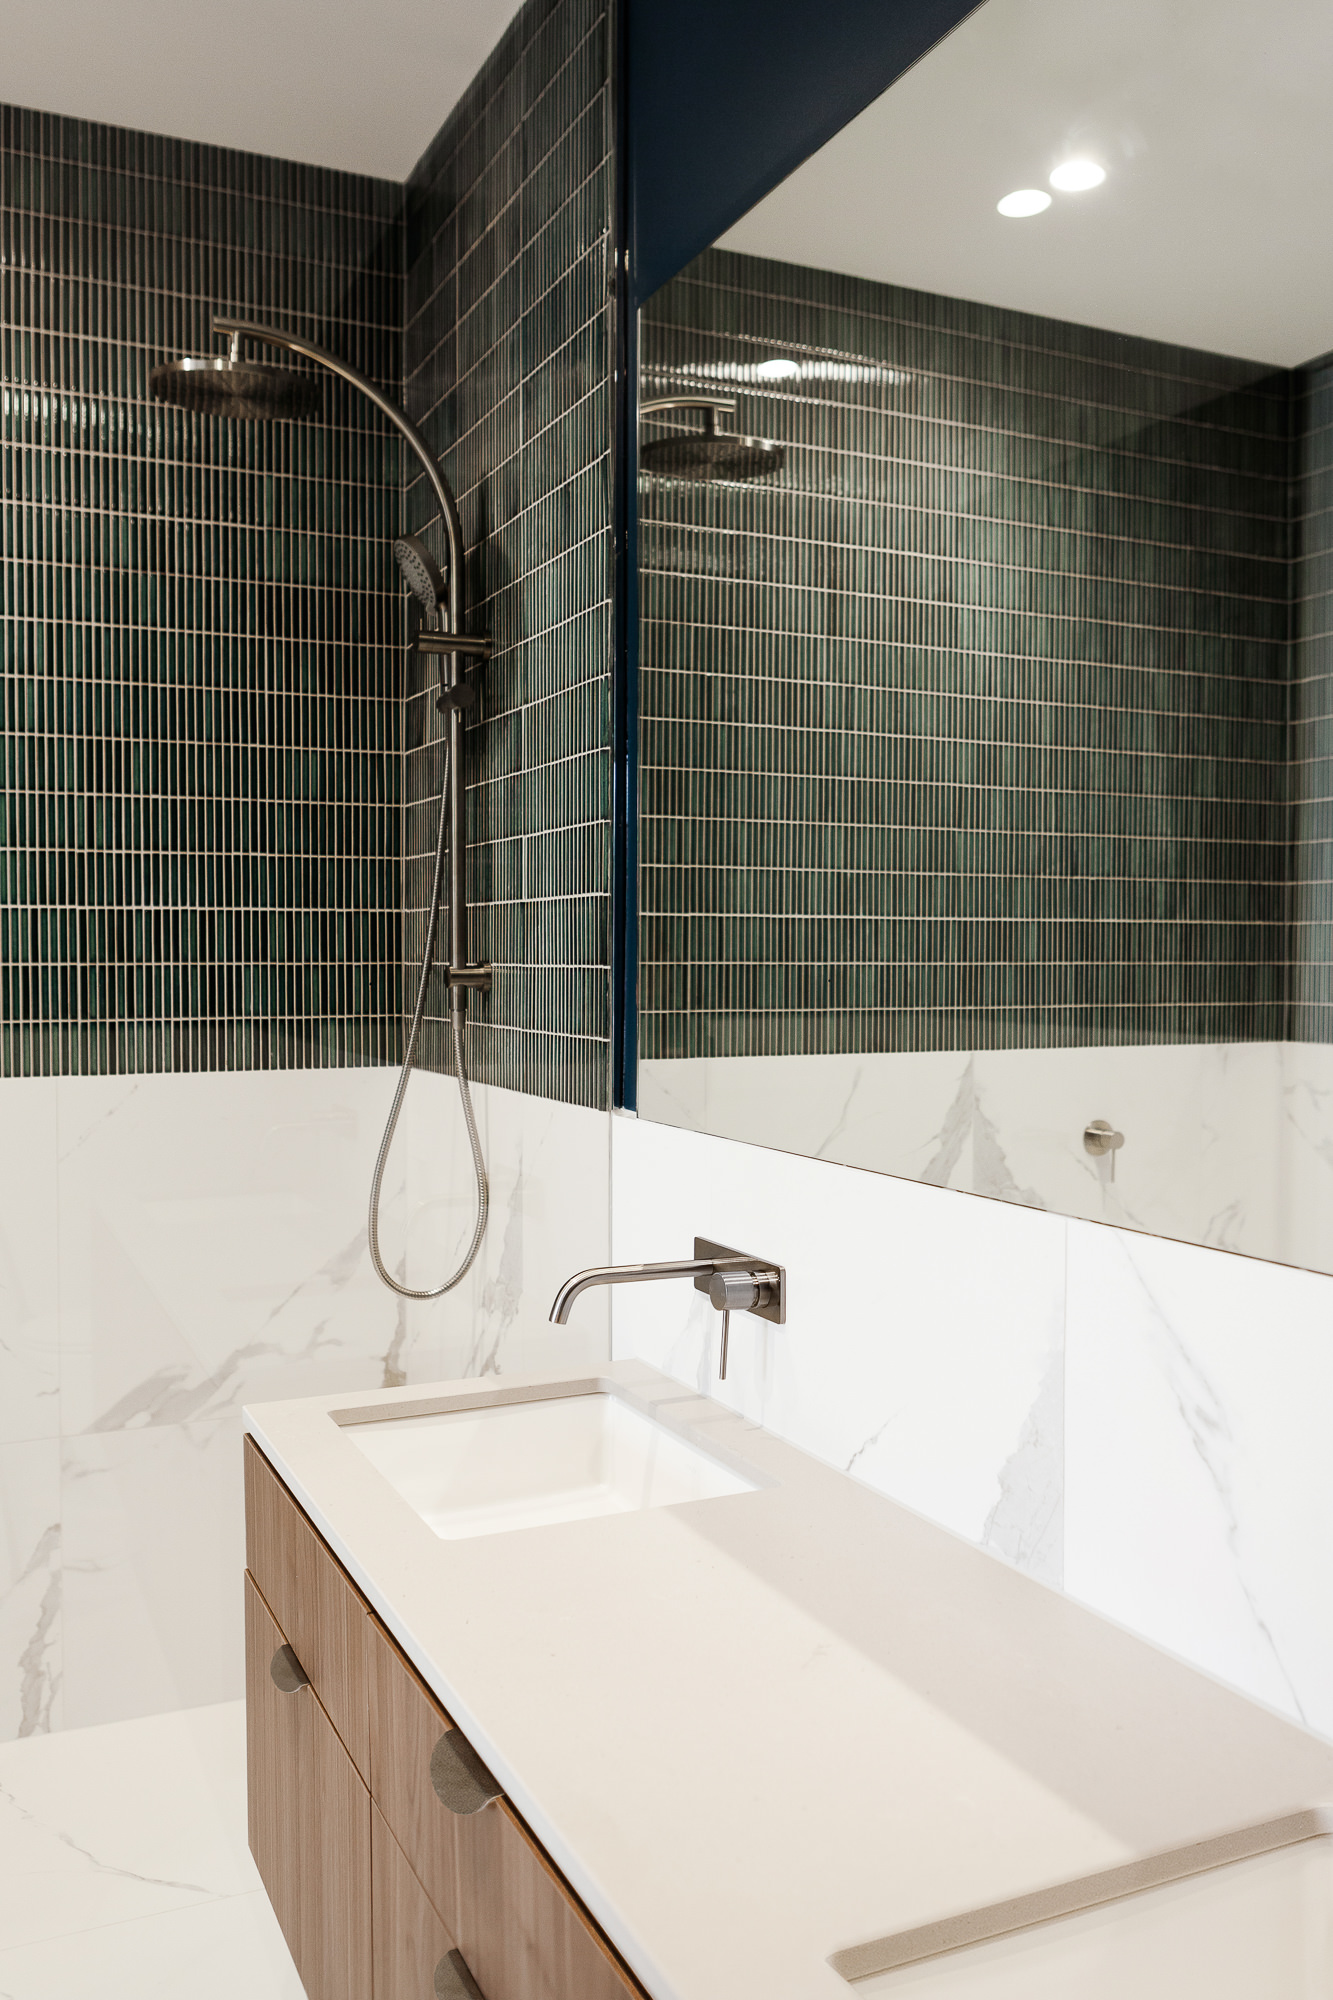 Brompton residential construction bathroom